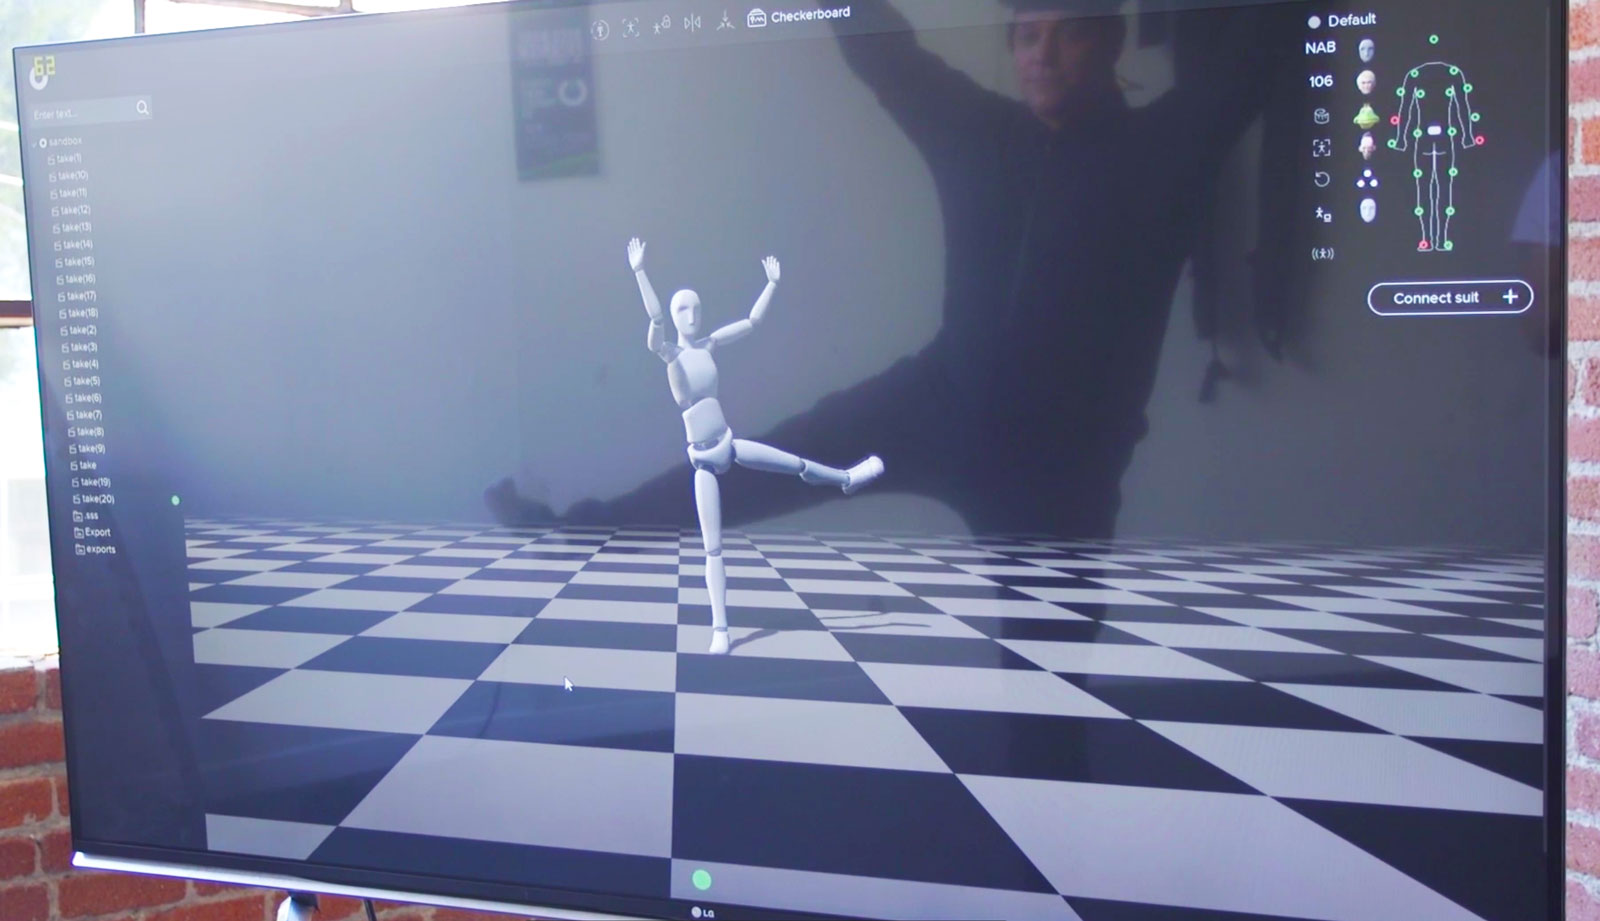 This mocap suit records Hollywood-quality animation at indie